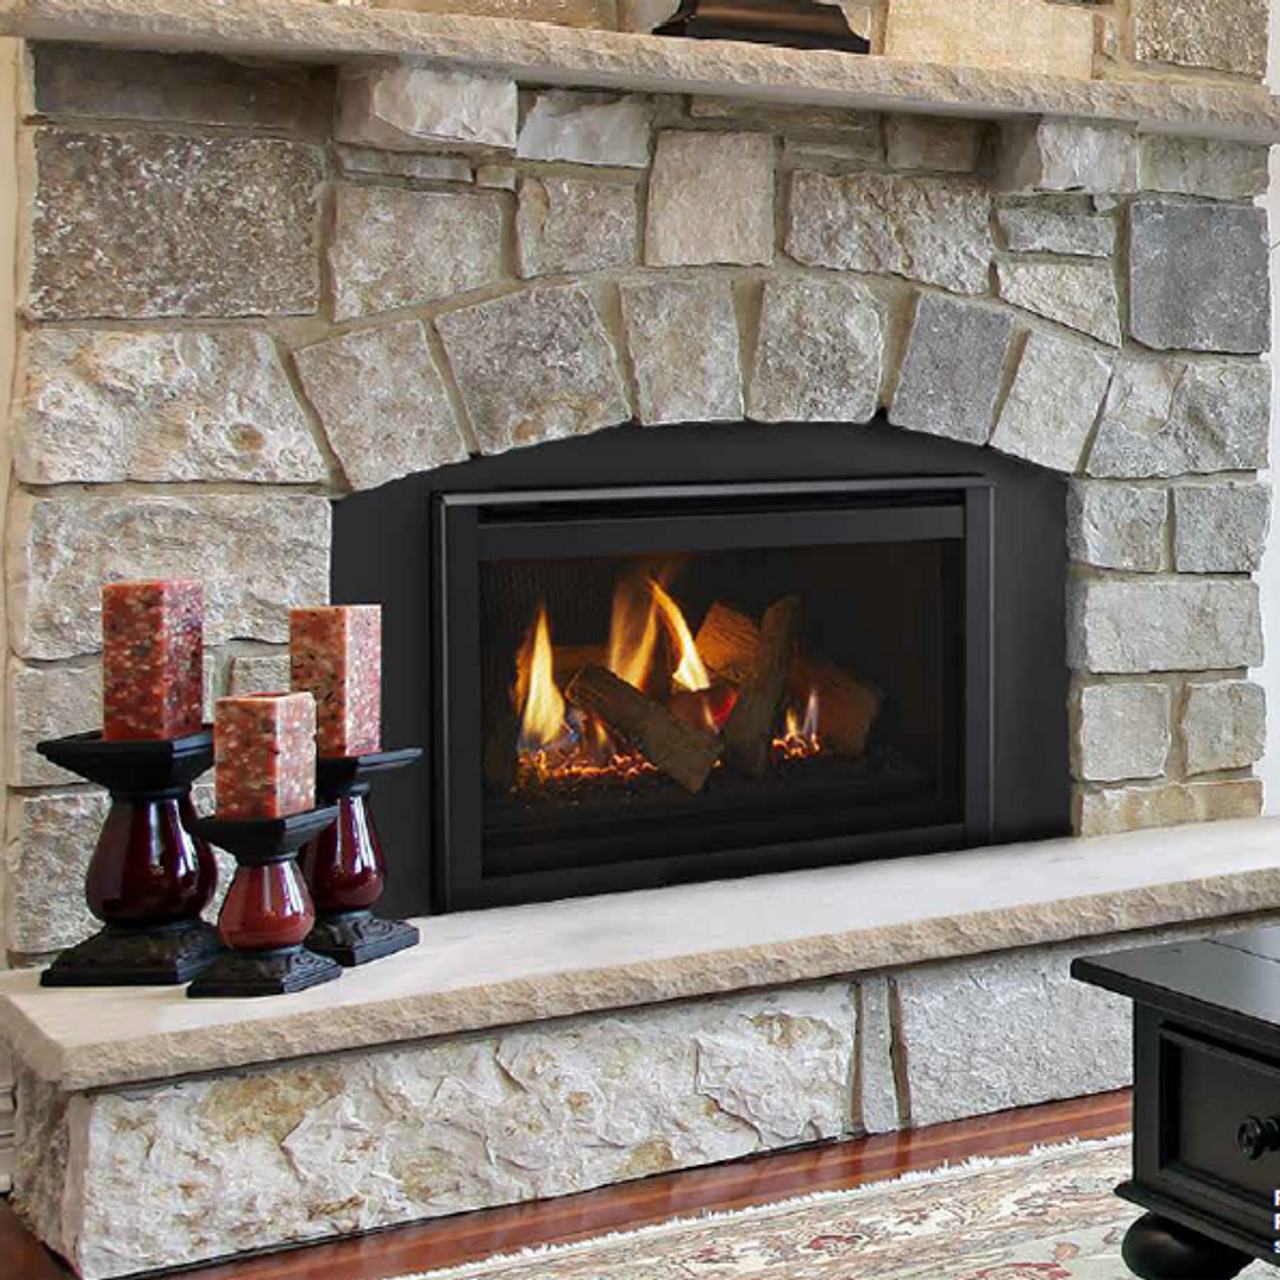 Majestic Ruby 25 Gas Fireplace Insert Package Deal